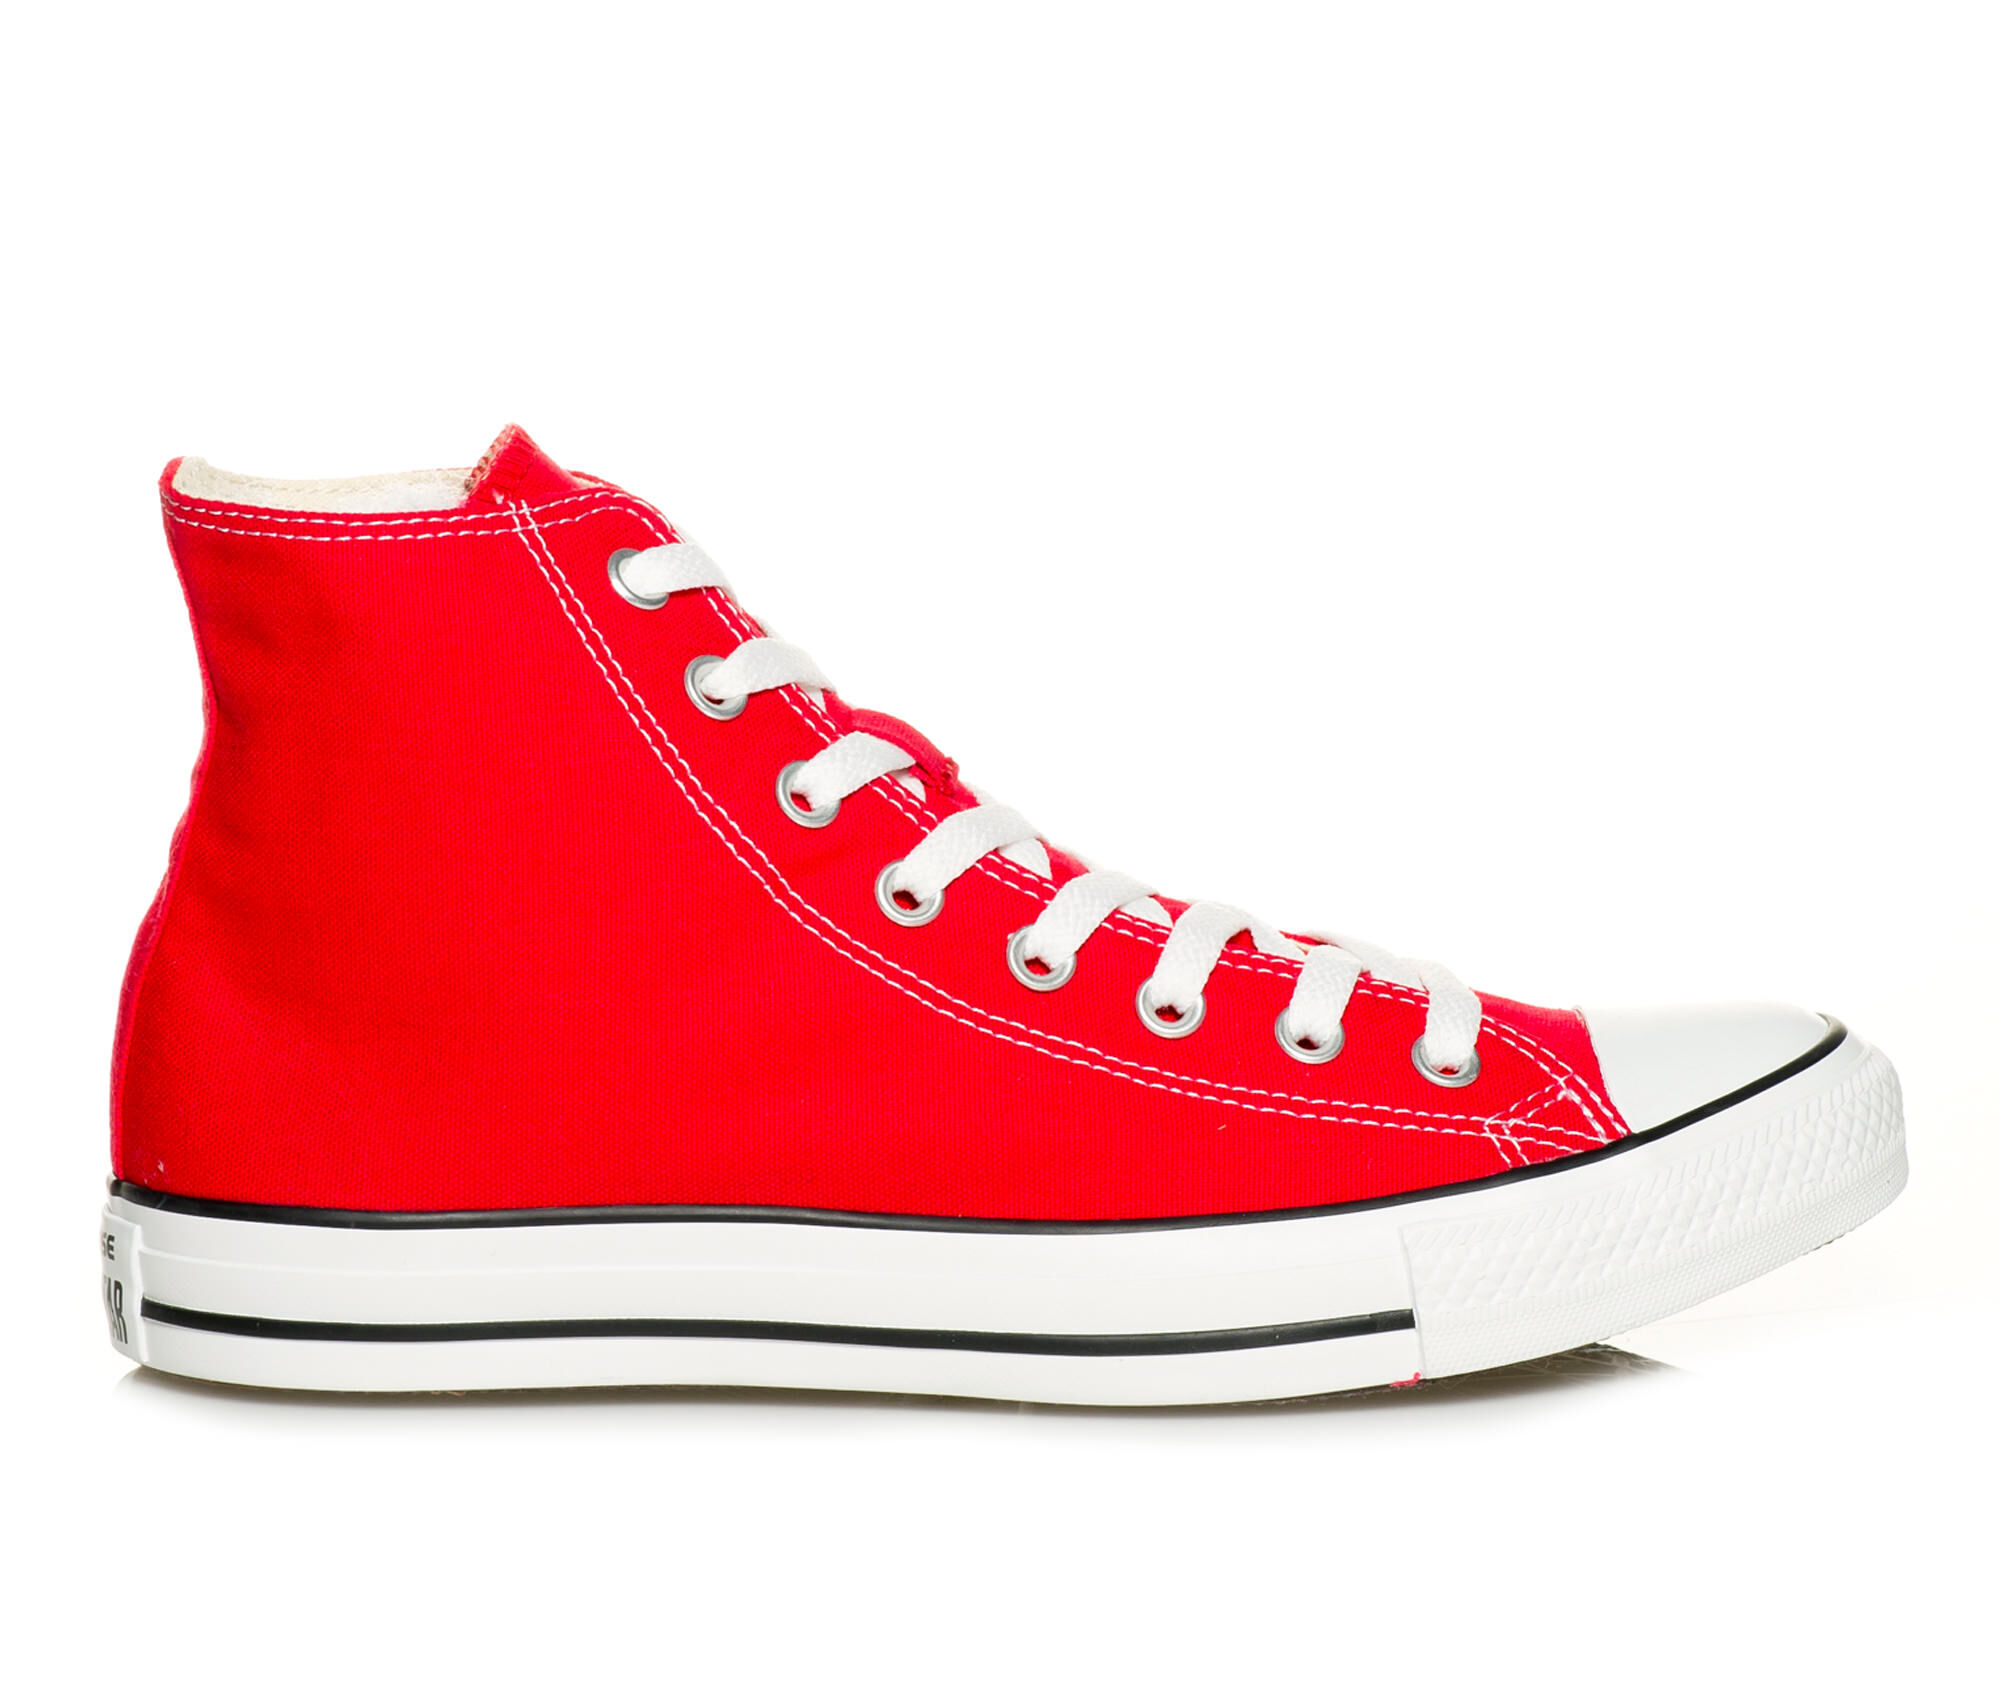 Adults' Converse Chuck Taylor All Star Canvas Hi High Top Sneakers Red